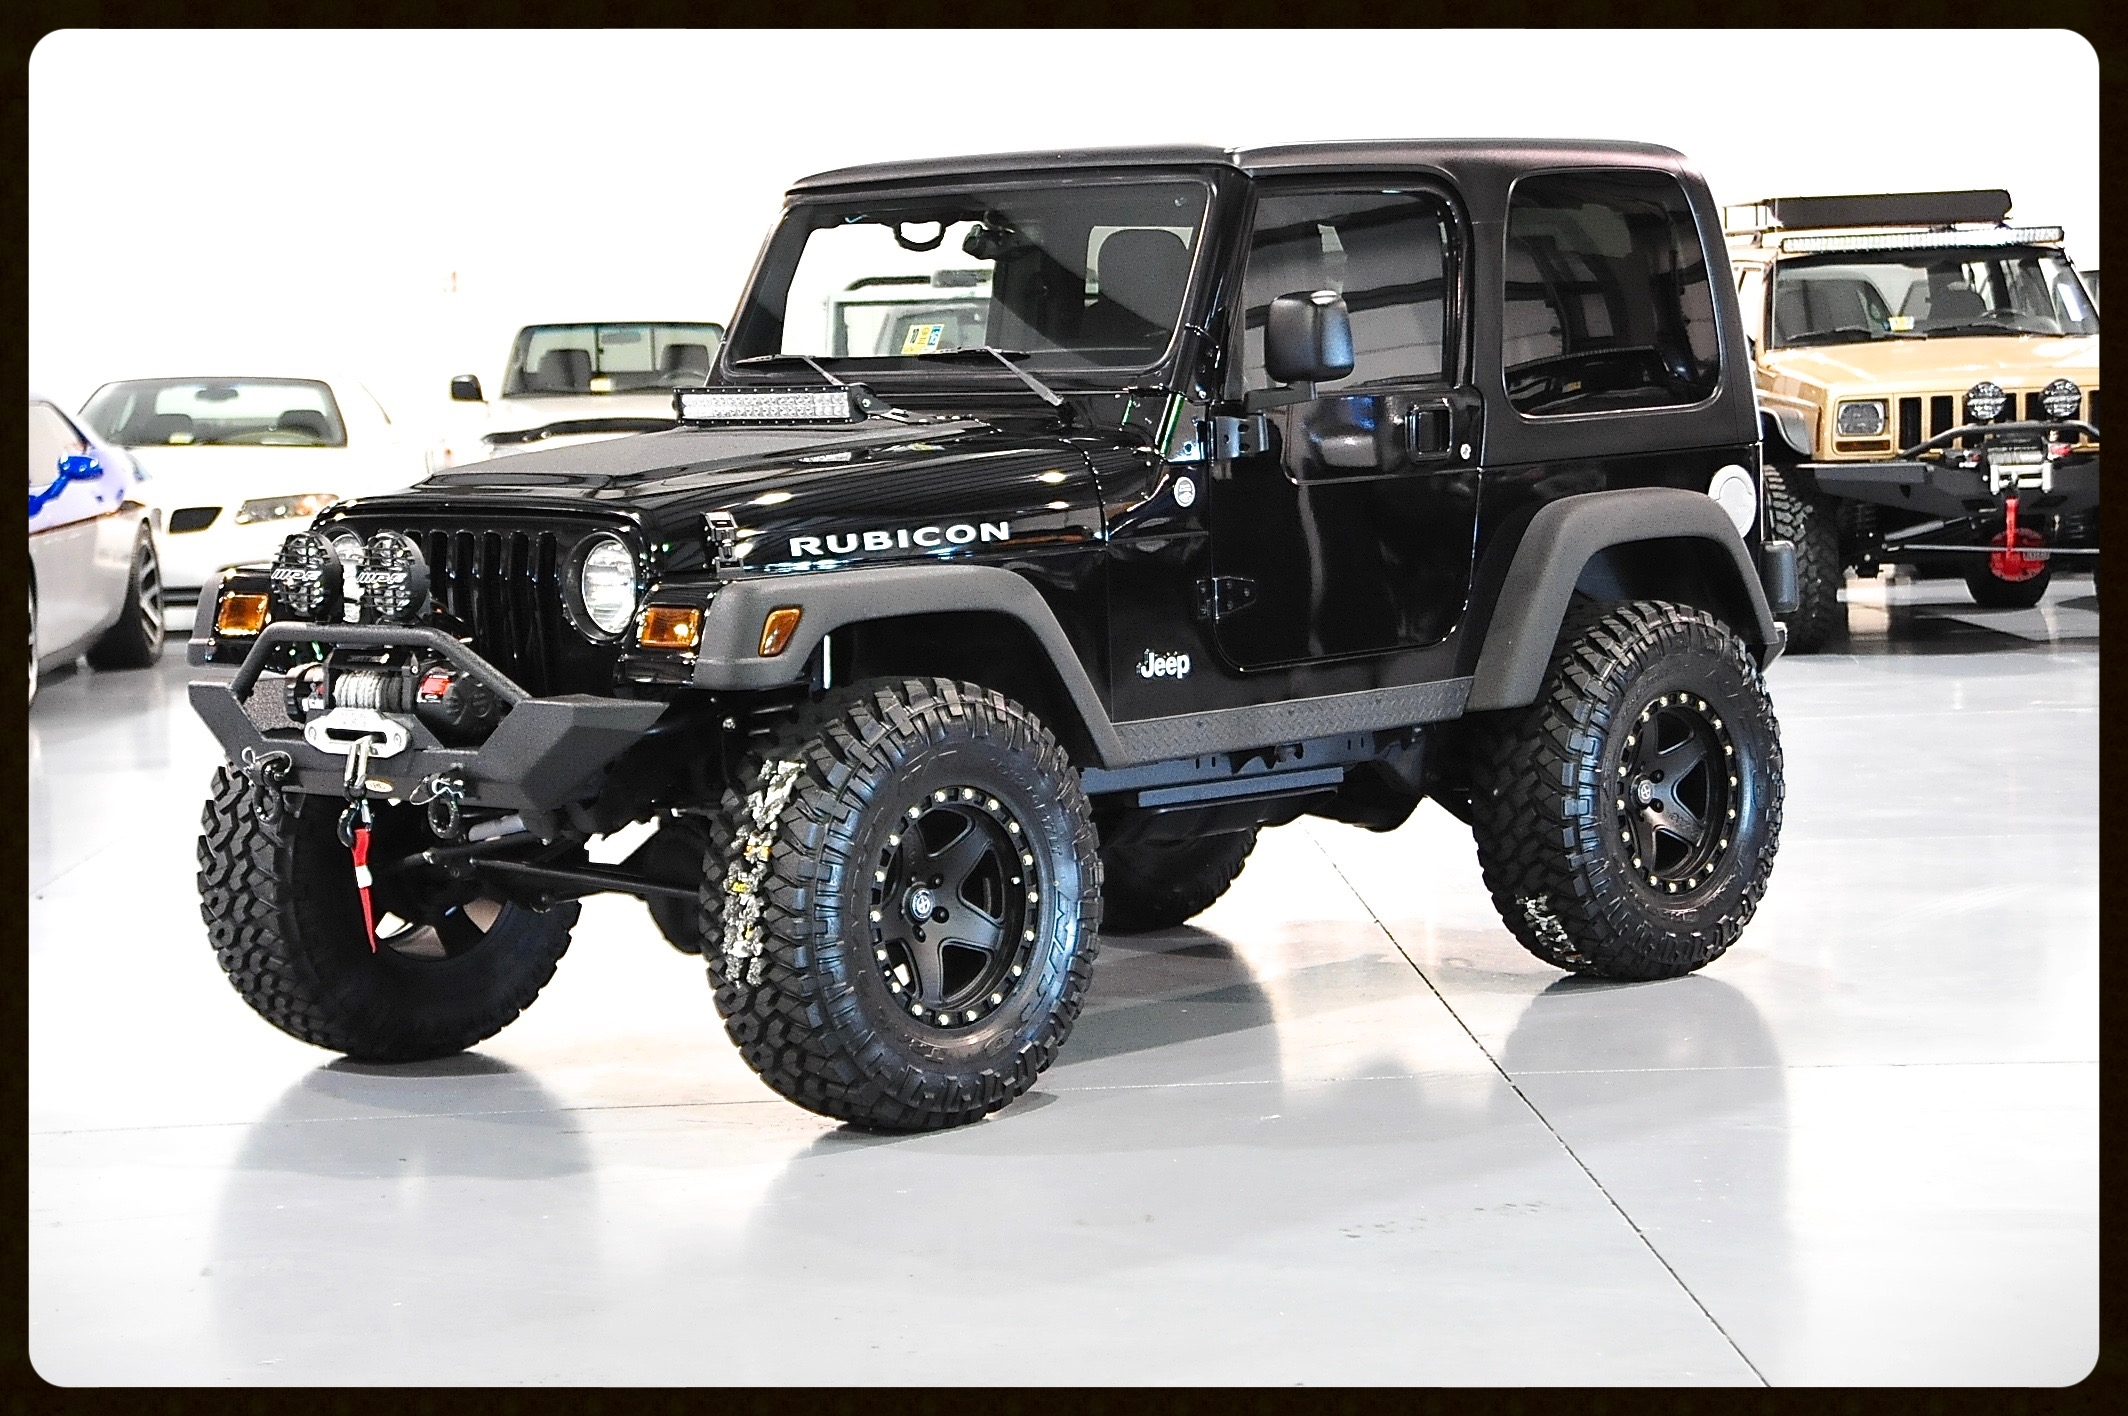 2006 Rubicon with ONLY 33K MILES....TONS and TONS of Upgrades on this Like New TJ...Very Rare Opportunity to Own Such a Unique Jeep